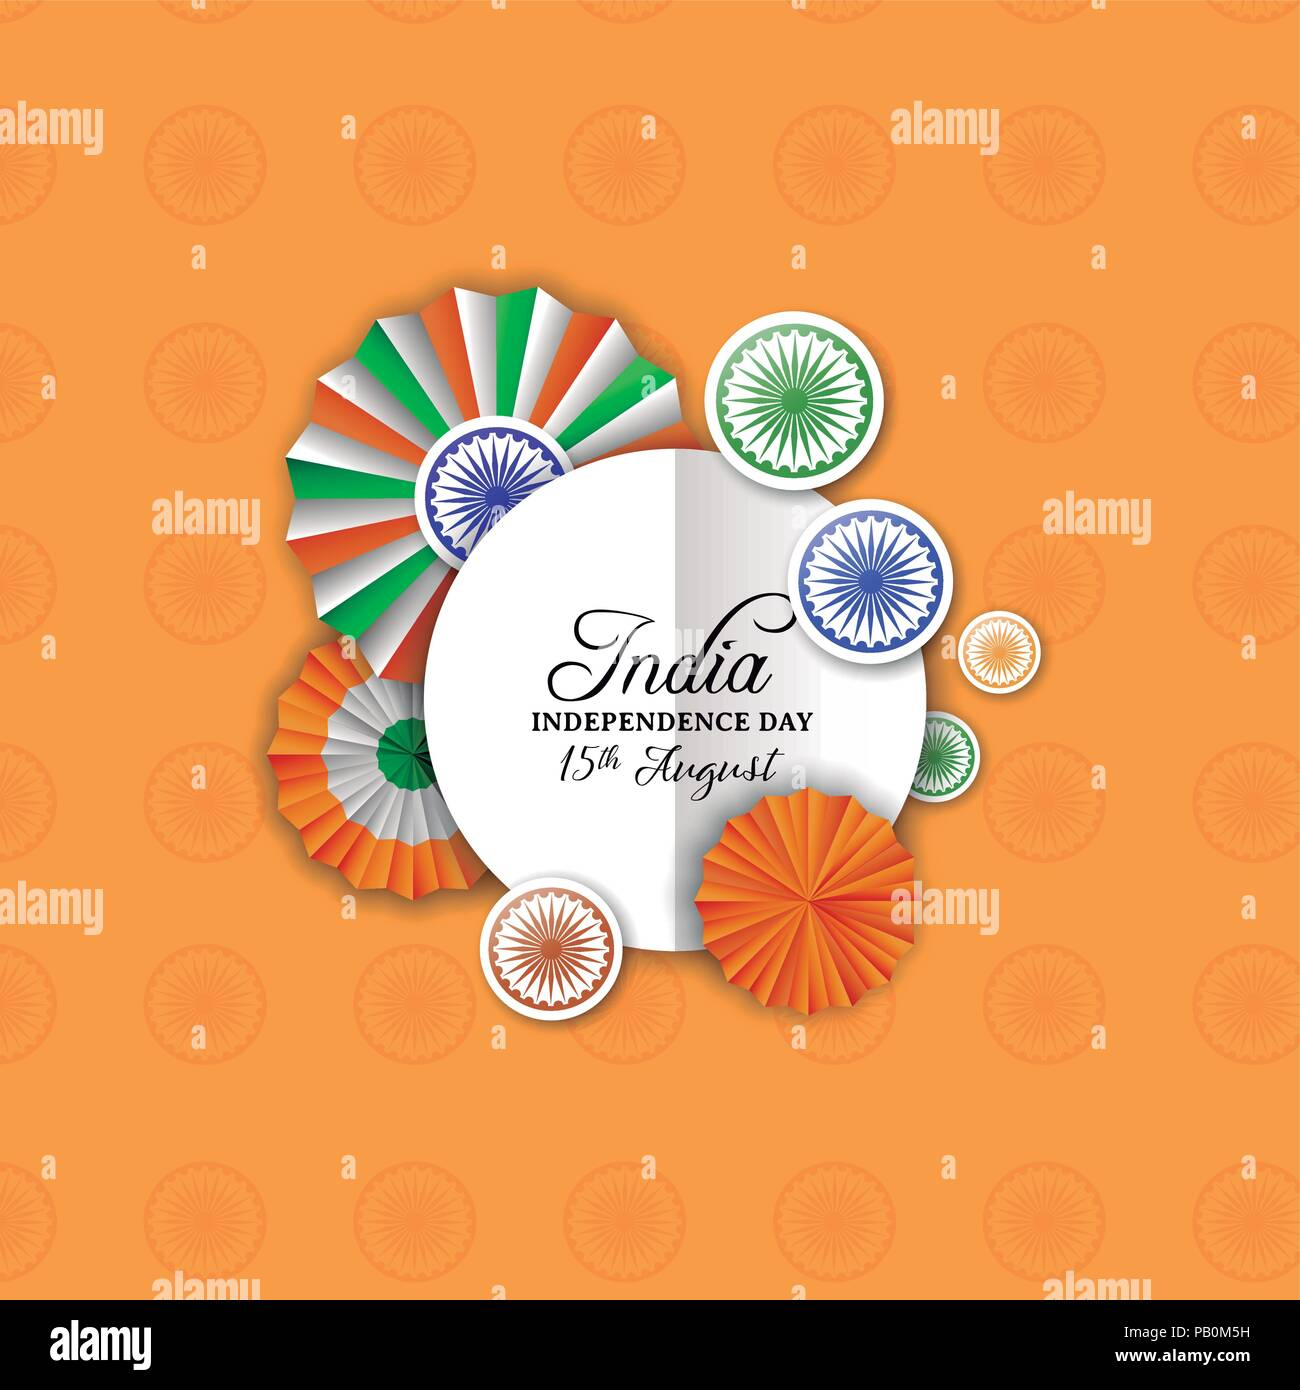 India Independence Day Greeting Card Indian Tricolor Badge